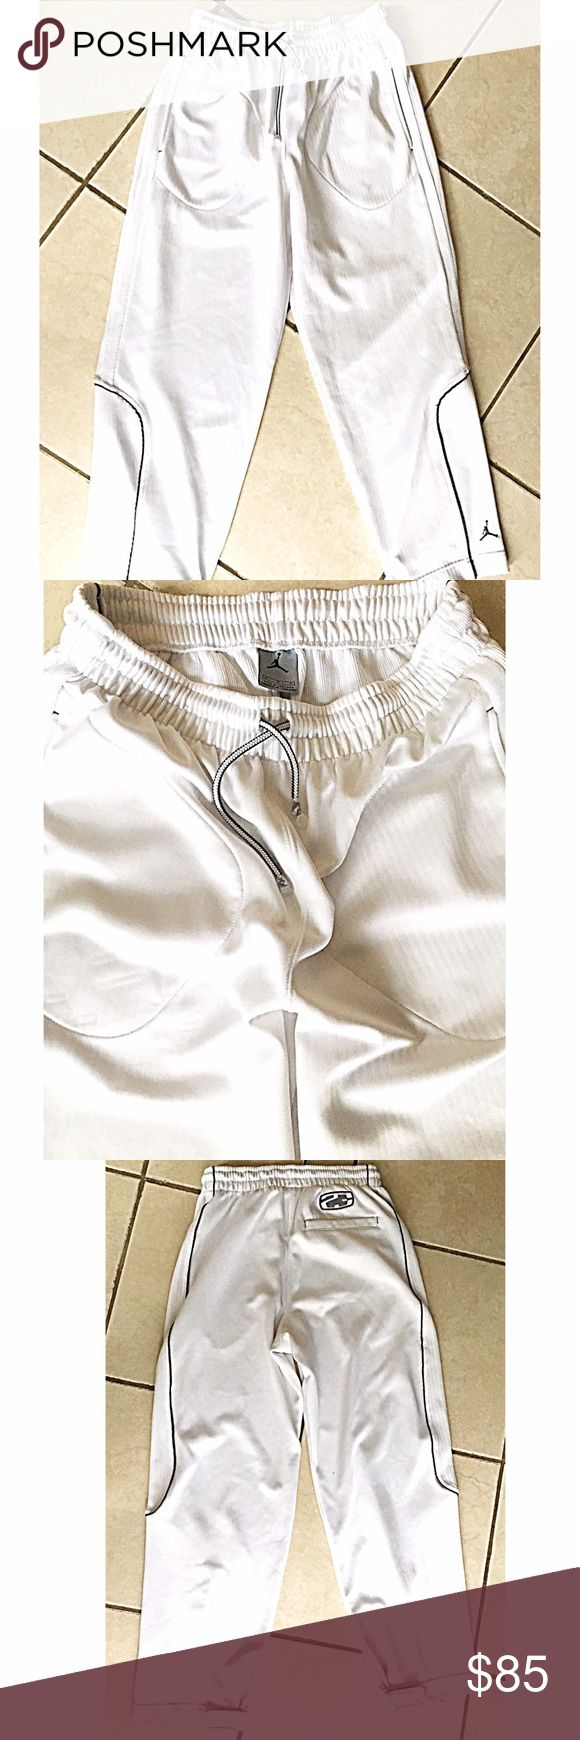 JORDAN MENS SWEATS RARE JORDAN SWEATS. MENS SMALL - WHITE IN COLOR CAN TELL FEOM PICS HOW CLEAN- ONLY WORE ONCE OR TWICE AROUND THE HOUSE BASICALLY NEW! Jordan Pants Sweatpants & Joggers